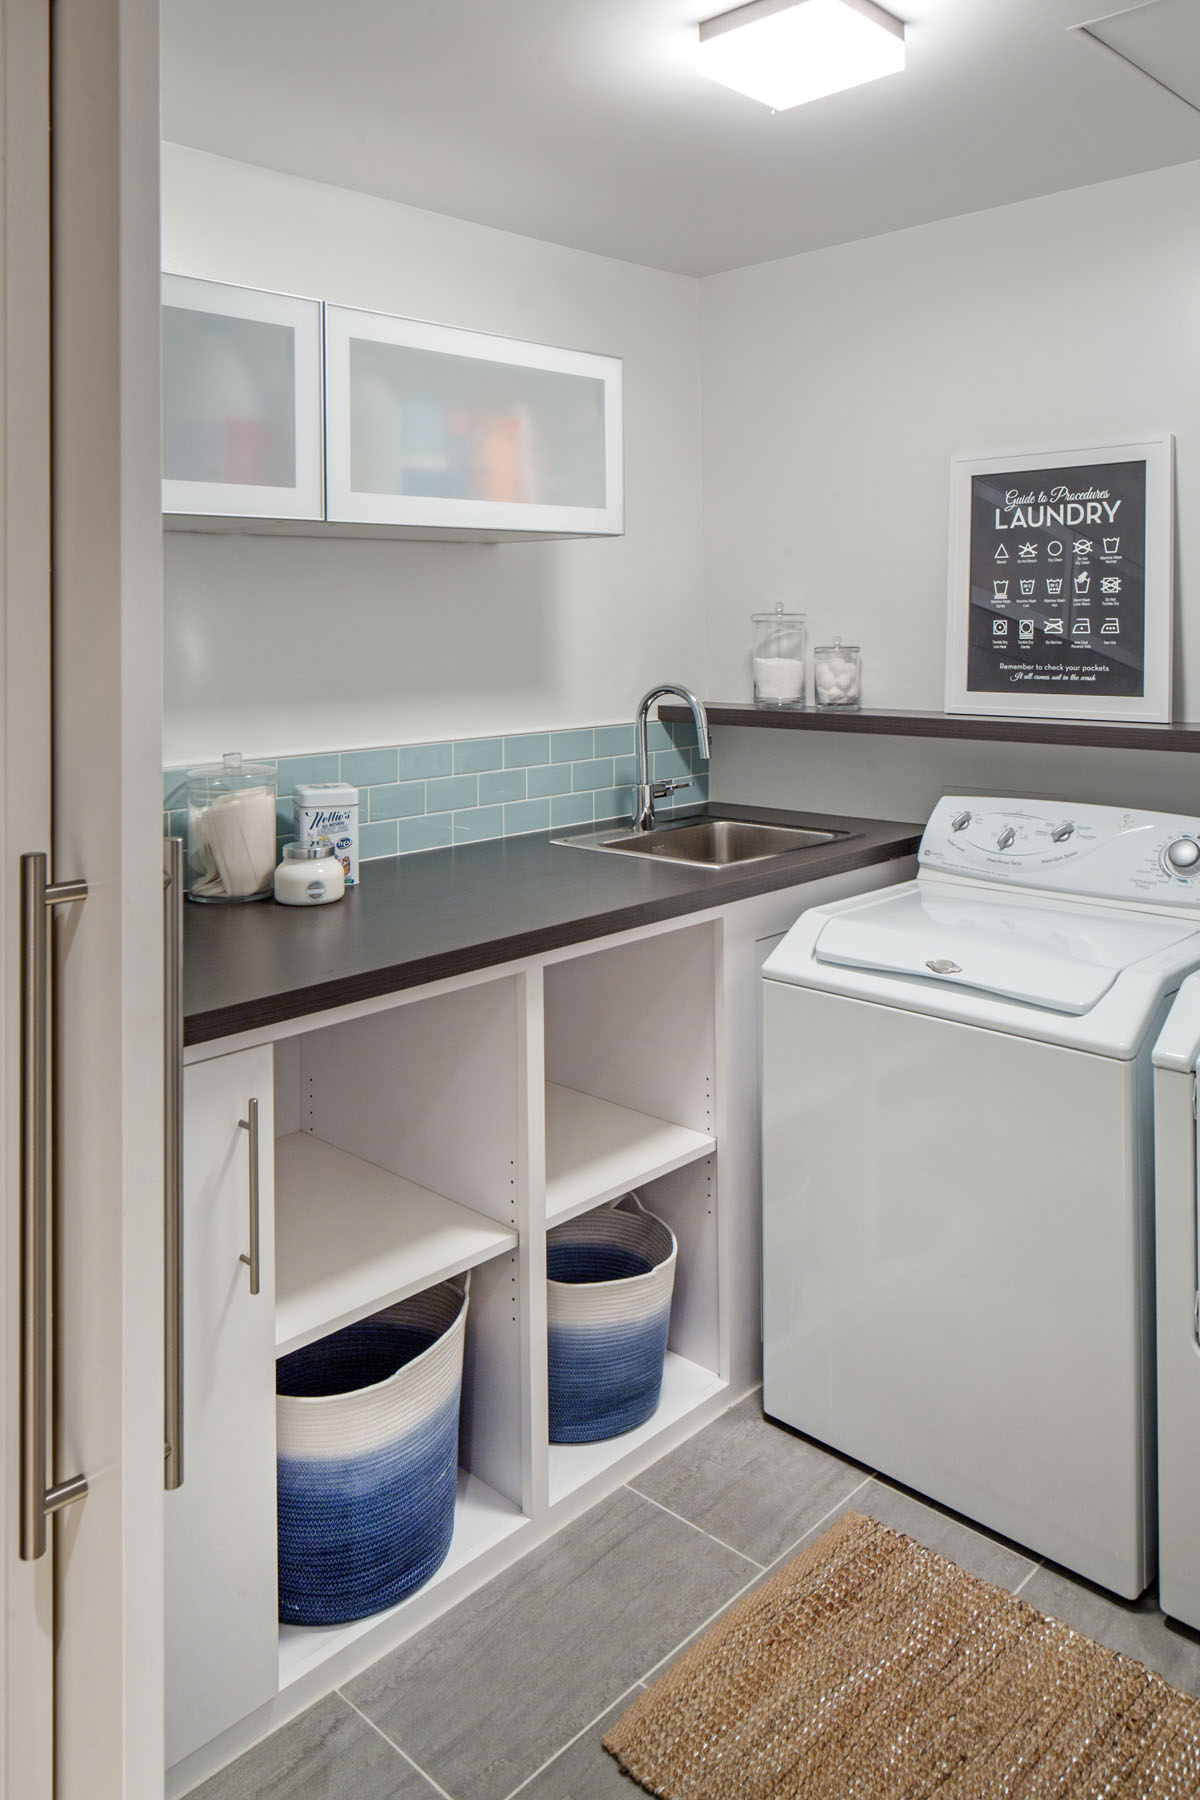 Contemporary-Laundry-Remodel.JPG